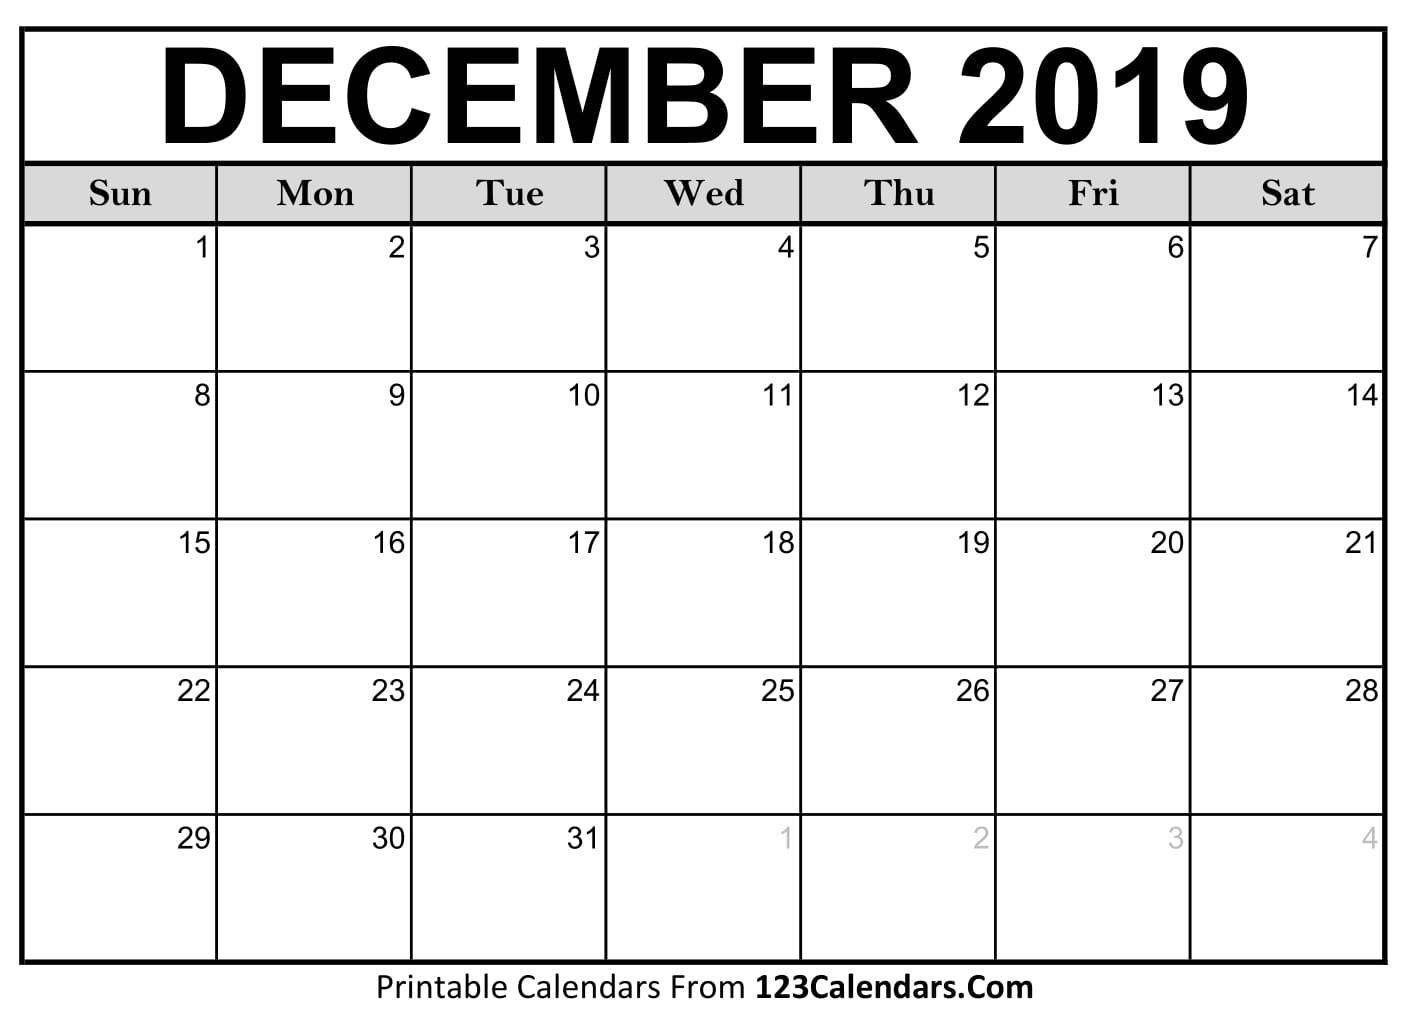 Blank December 2019 Calendar - Easily Printable - 123Calendars for Free Printable September Blank Calendars With Christian Themes